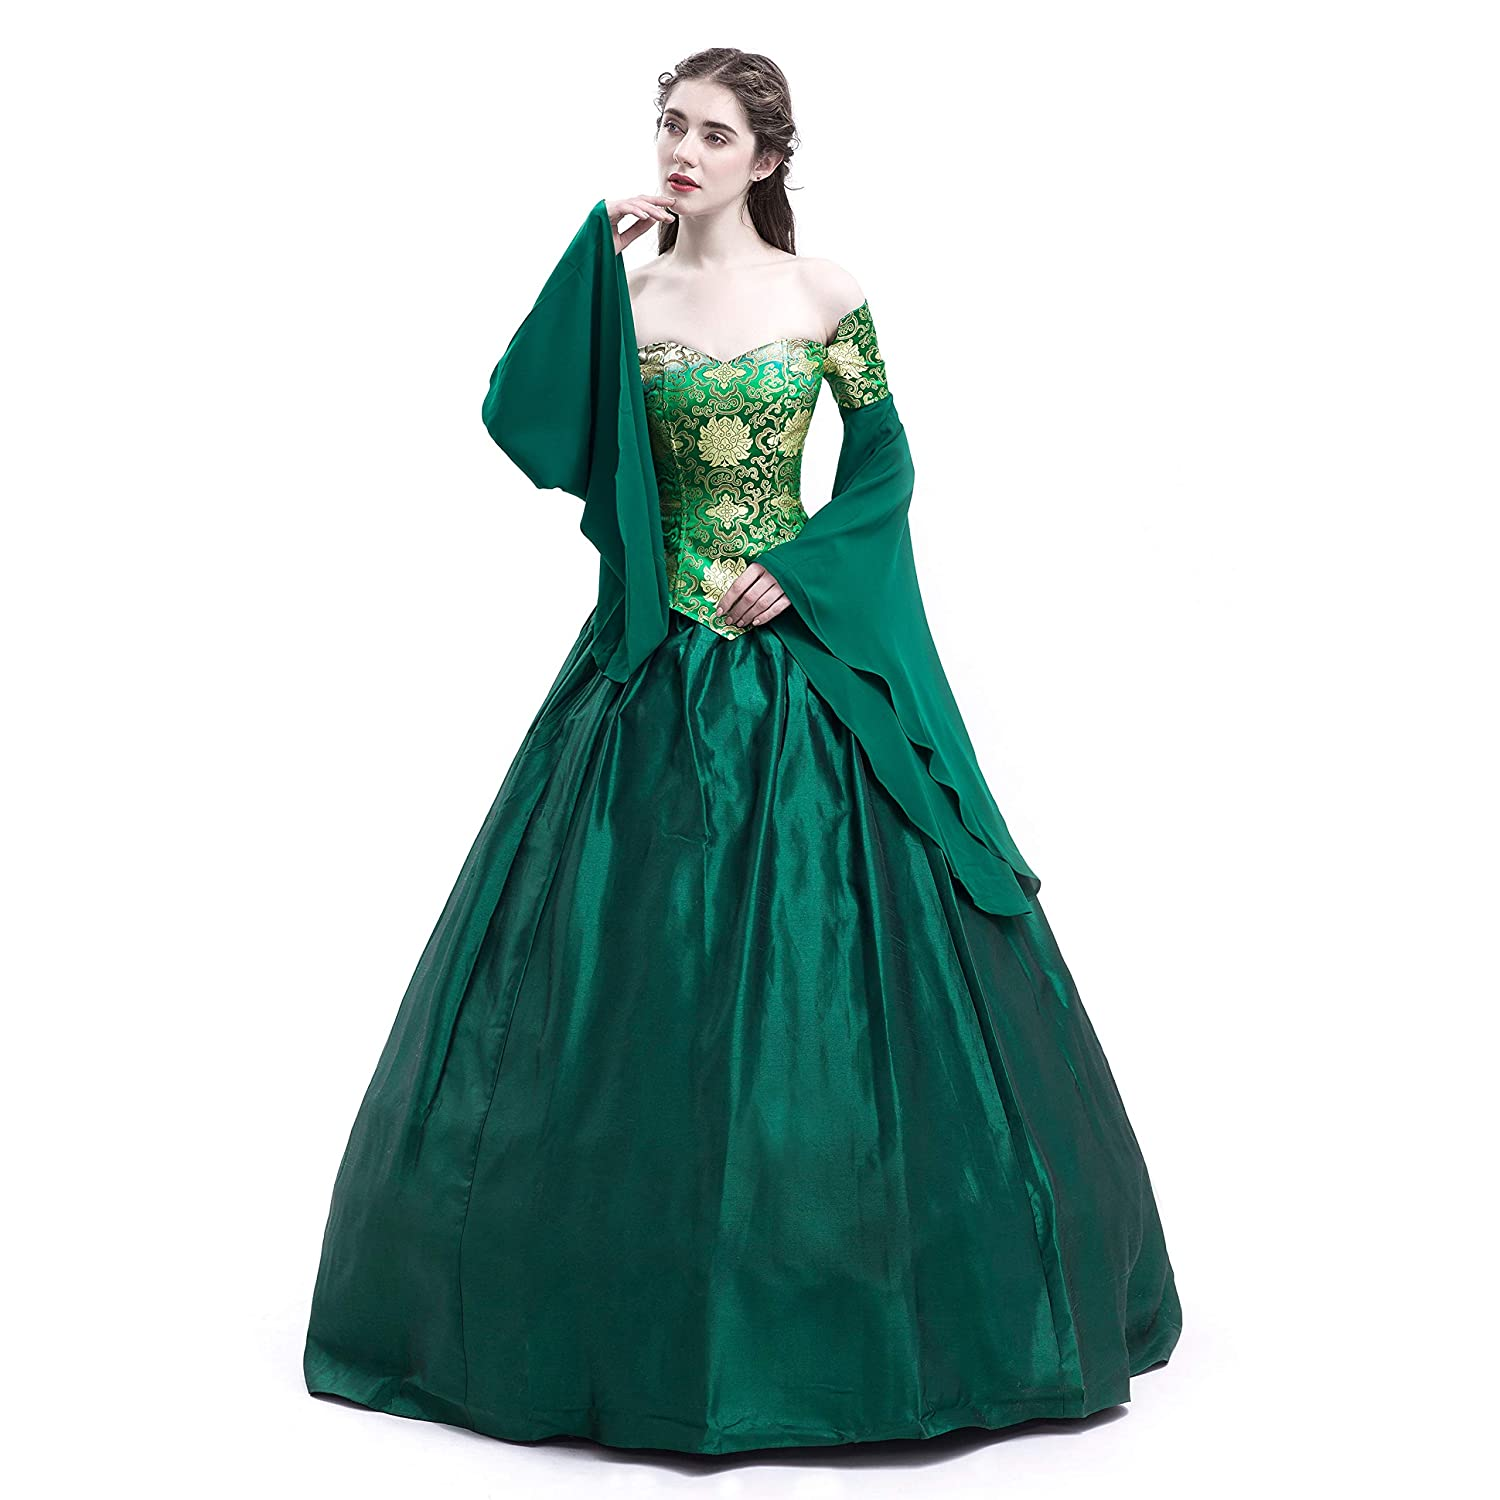 Renaissance Wedding Dress.D Roseblooming Green Vintage Renaissance Wedding Dress Gothic